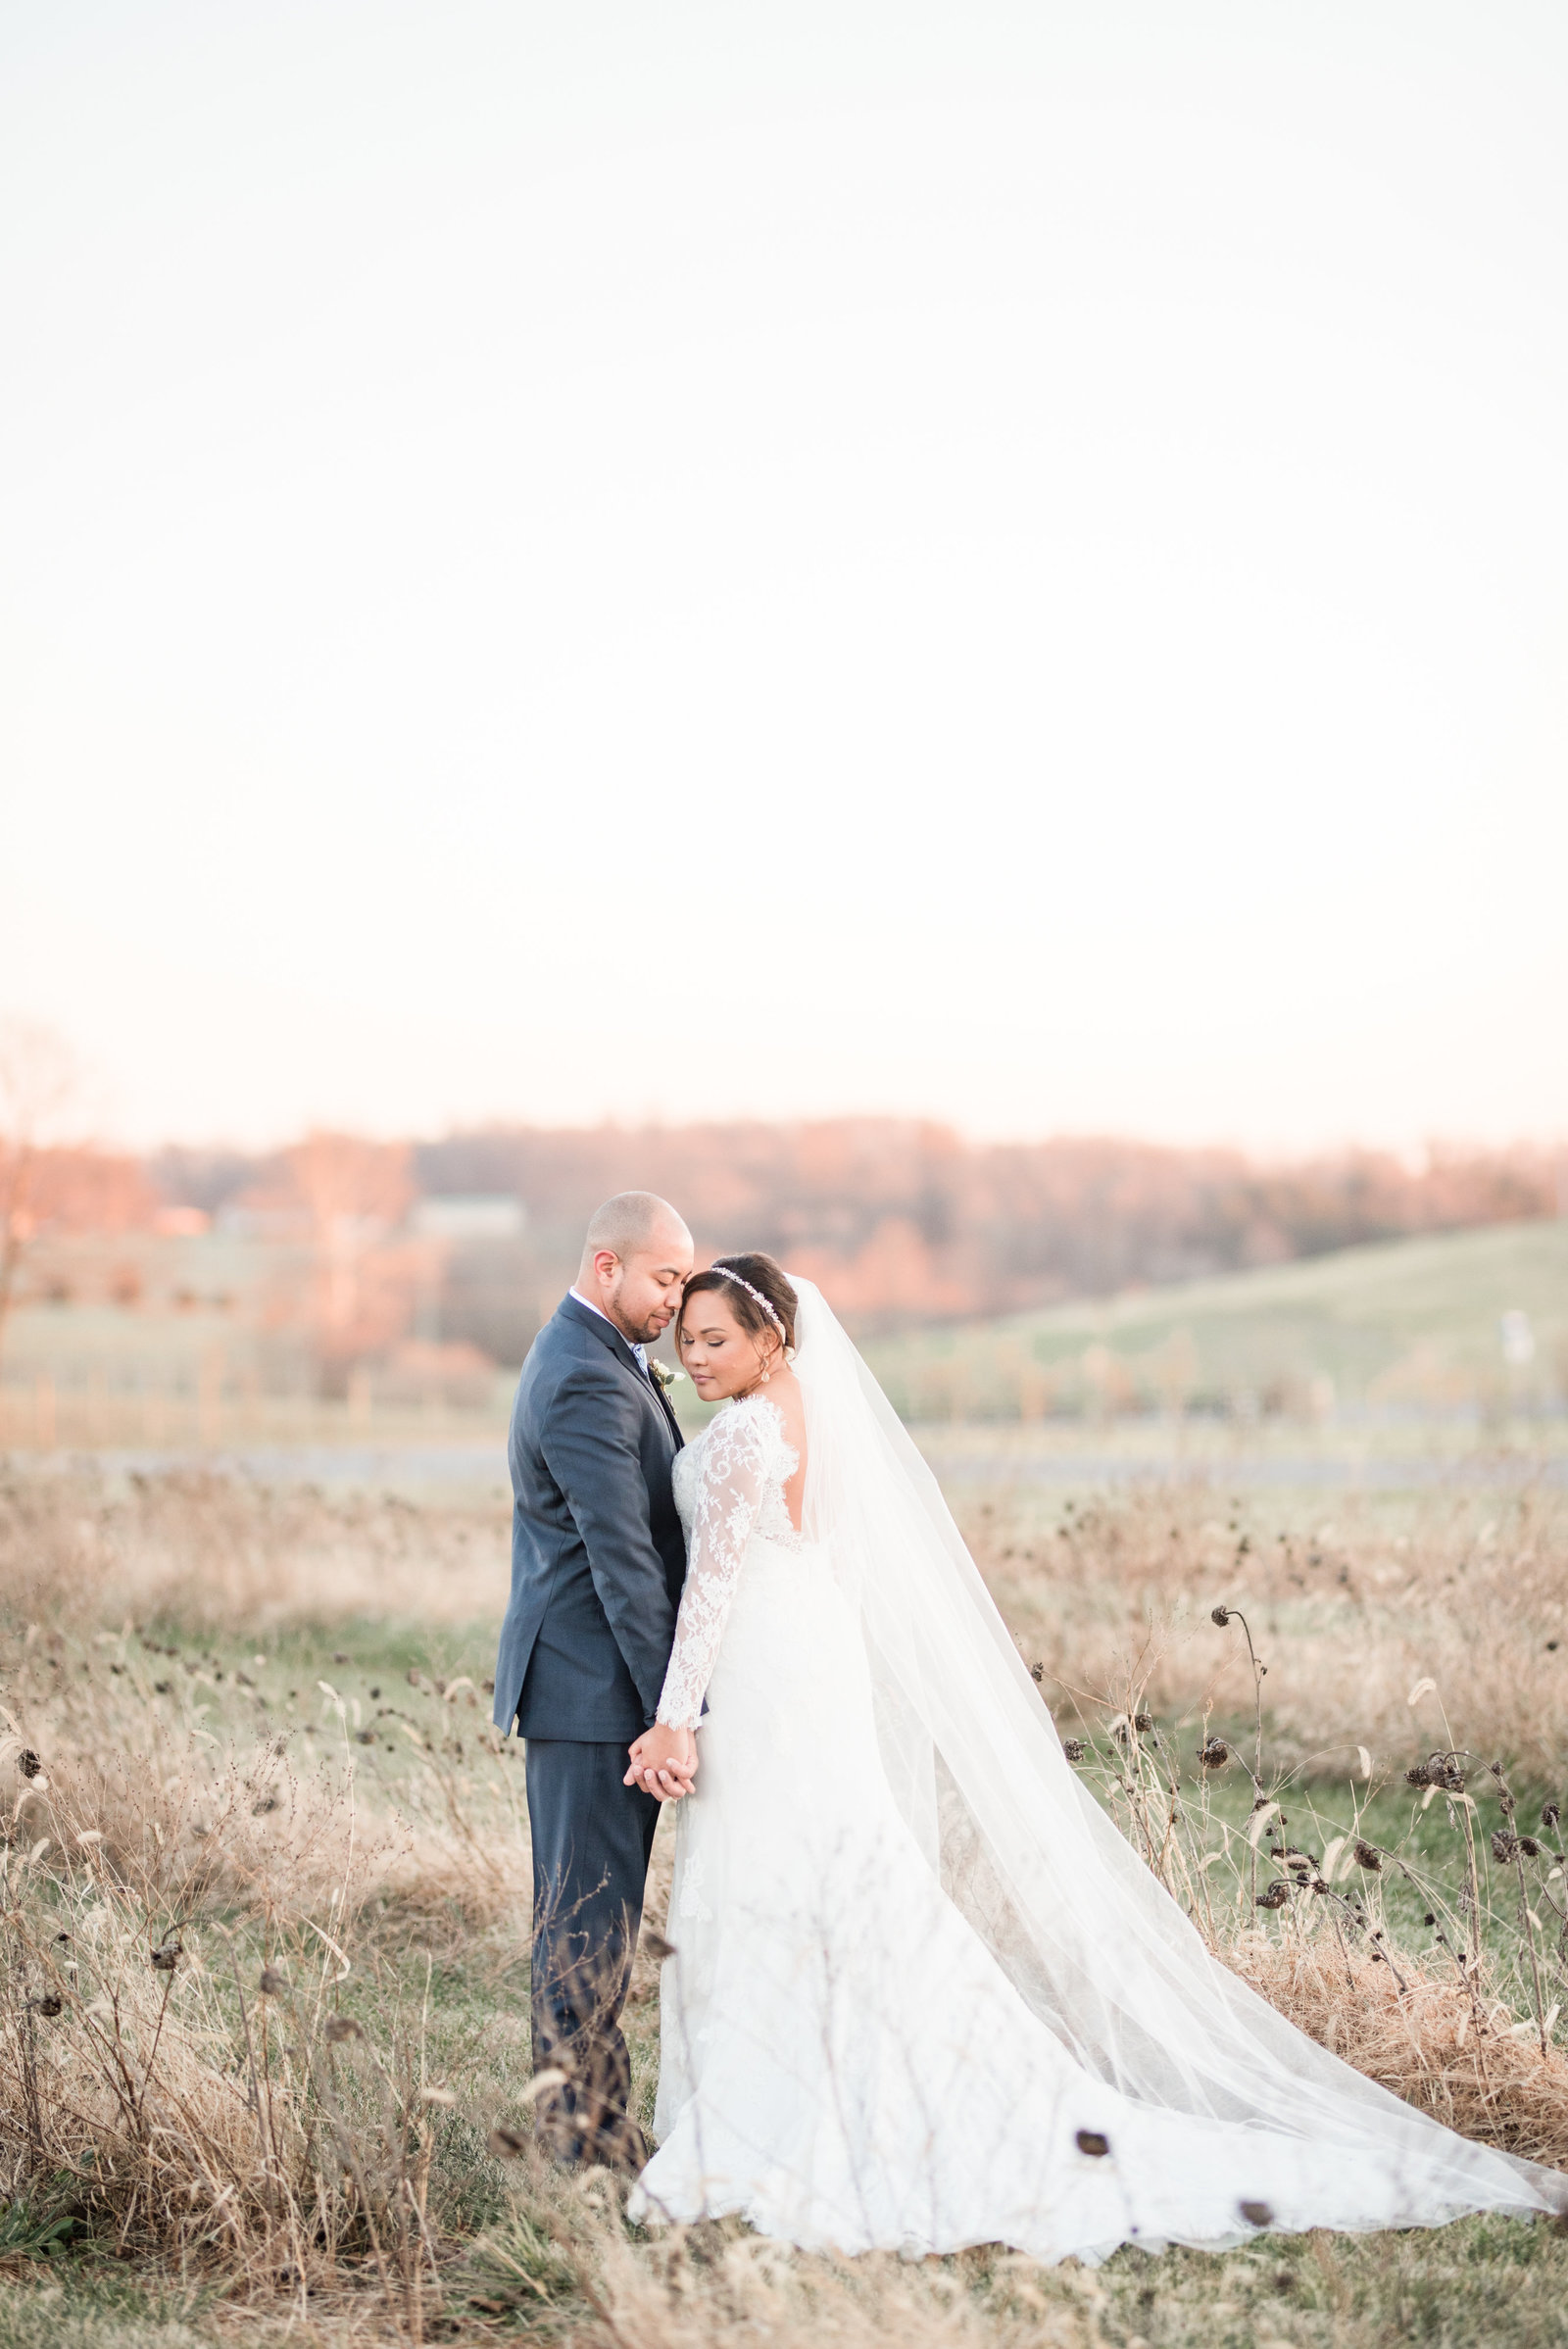 charlottesville-va-early-mountain-vineyard-wedding-by-virginia-hampton-roads-photogrpaher-photo816